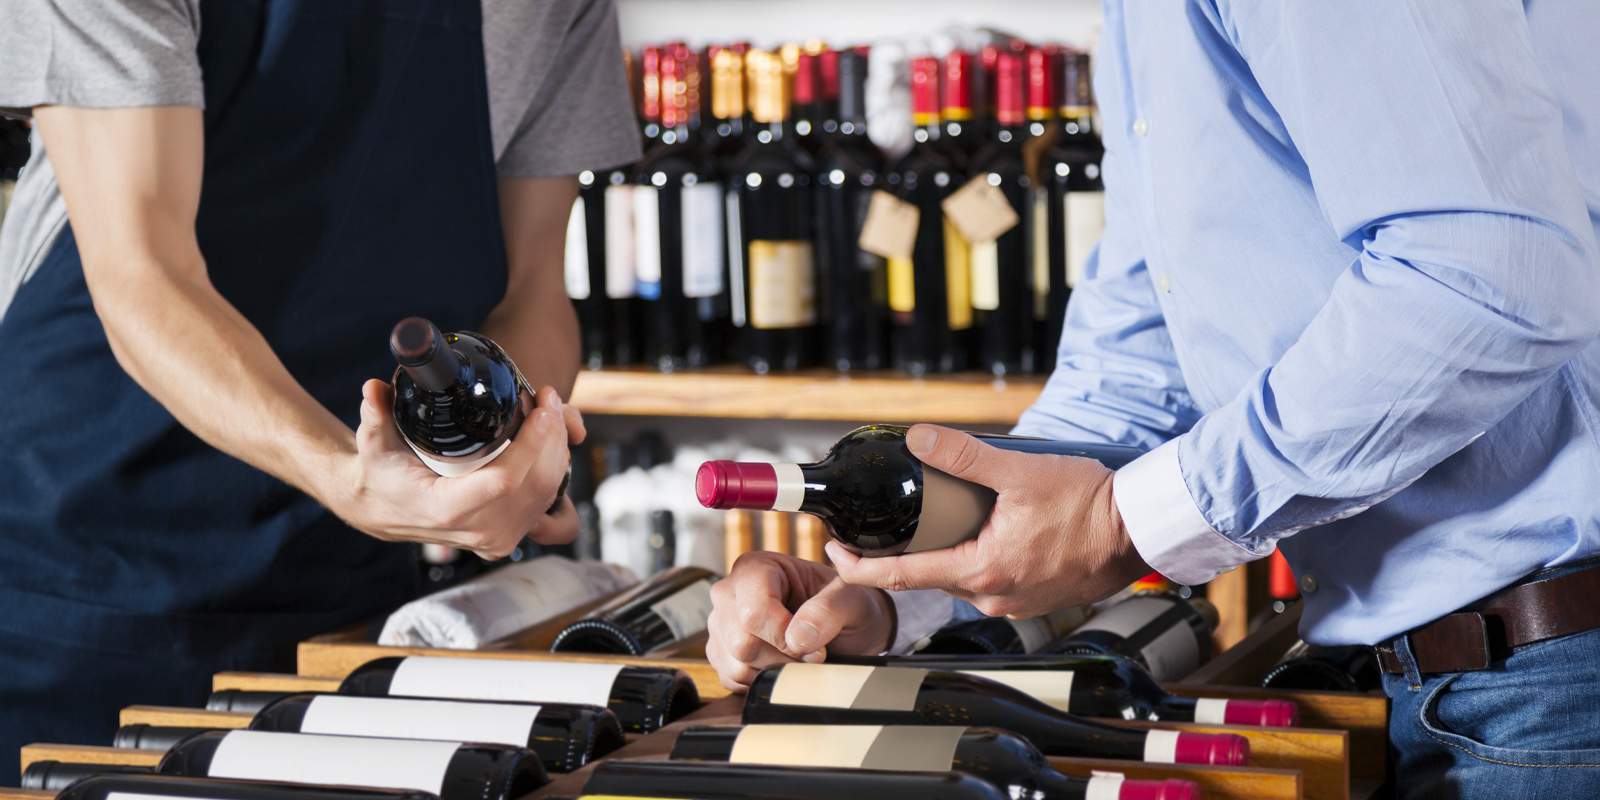 The Beginners Guide to Labeling Requirements for Alcoholic Beverages